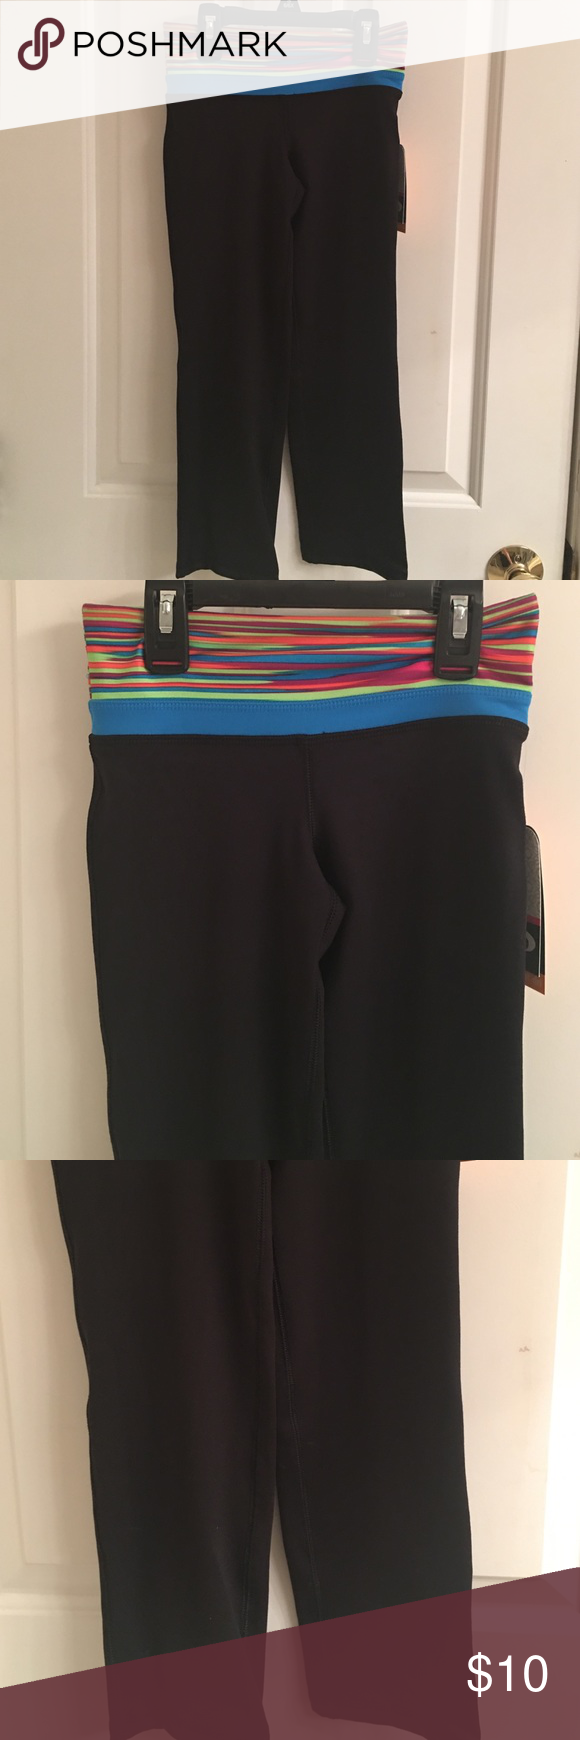 e1685f4460392 NWT- Girls MTA Sport Black Pants NWT- Girls MTA Sport black yoga pants.  Multi-color striped waistband. She will stay cool and dry.